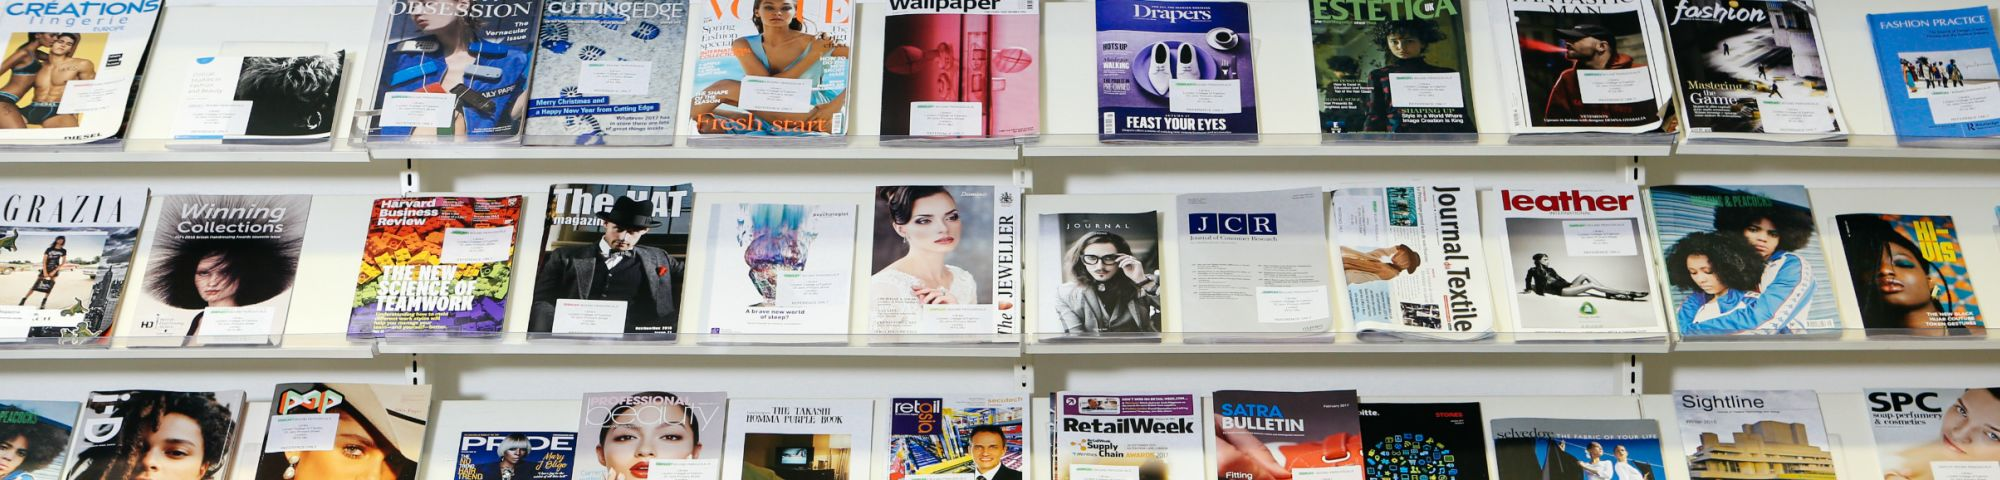 Collection of magazines displayed across a wall